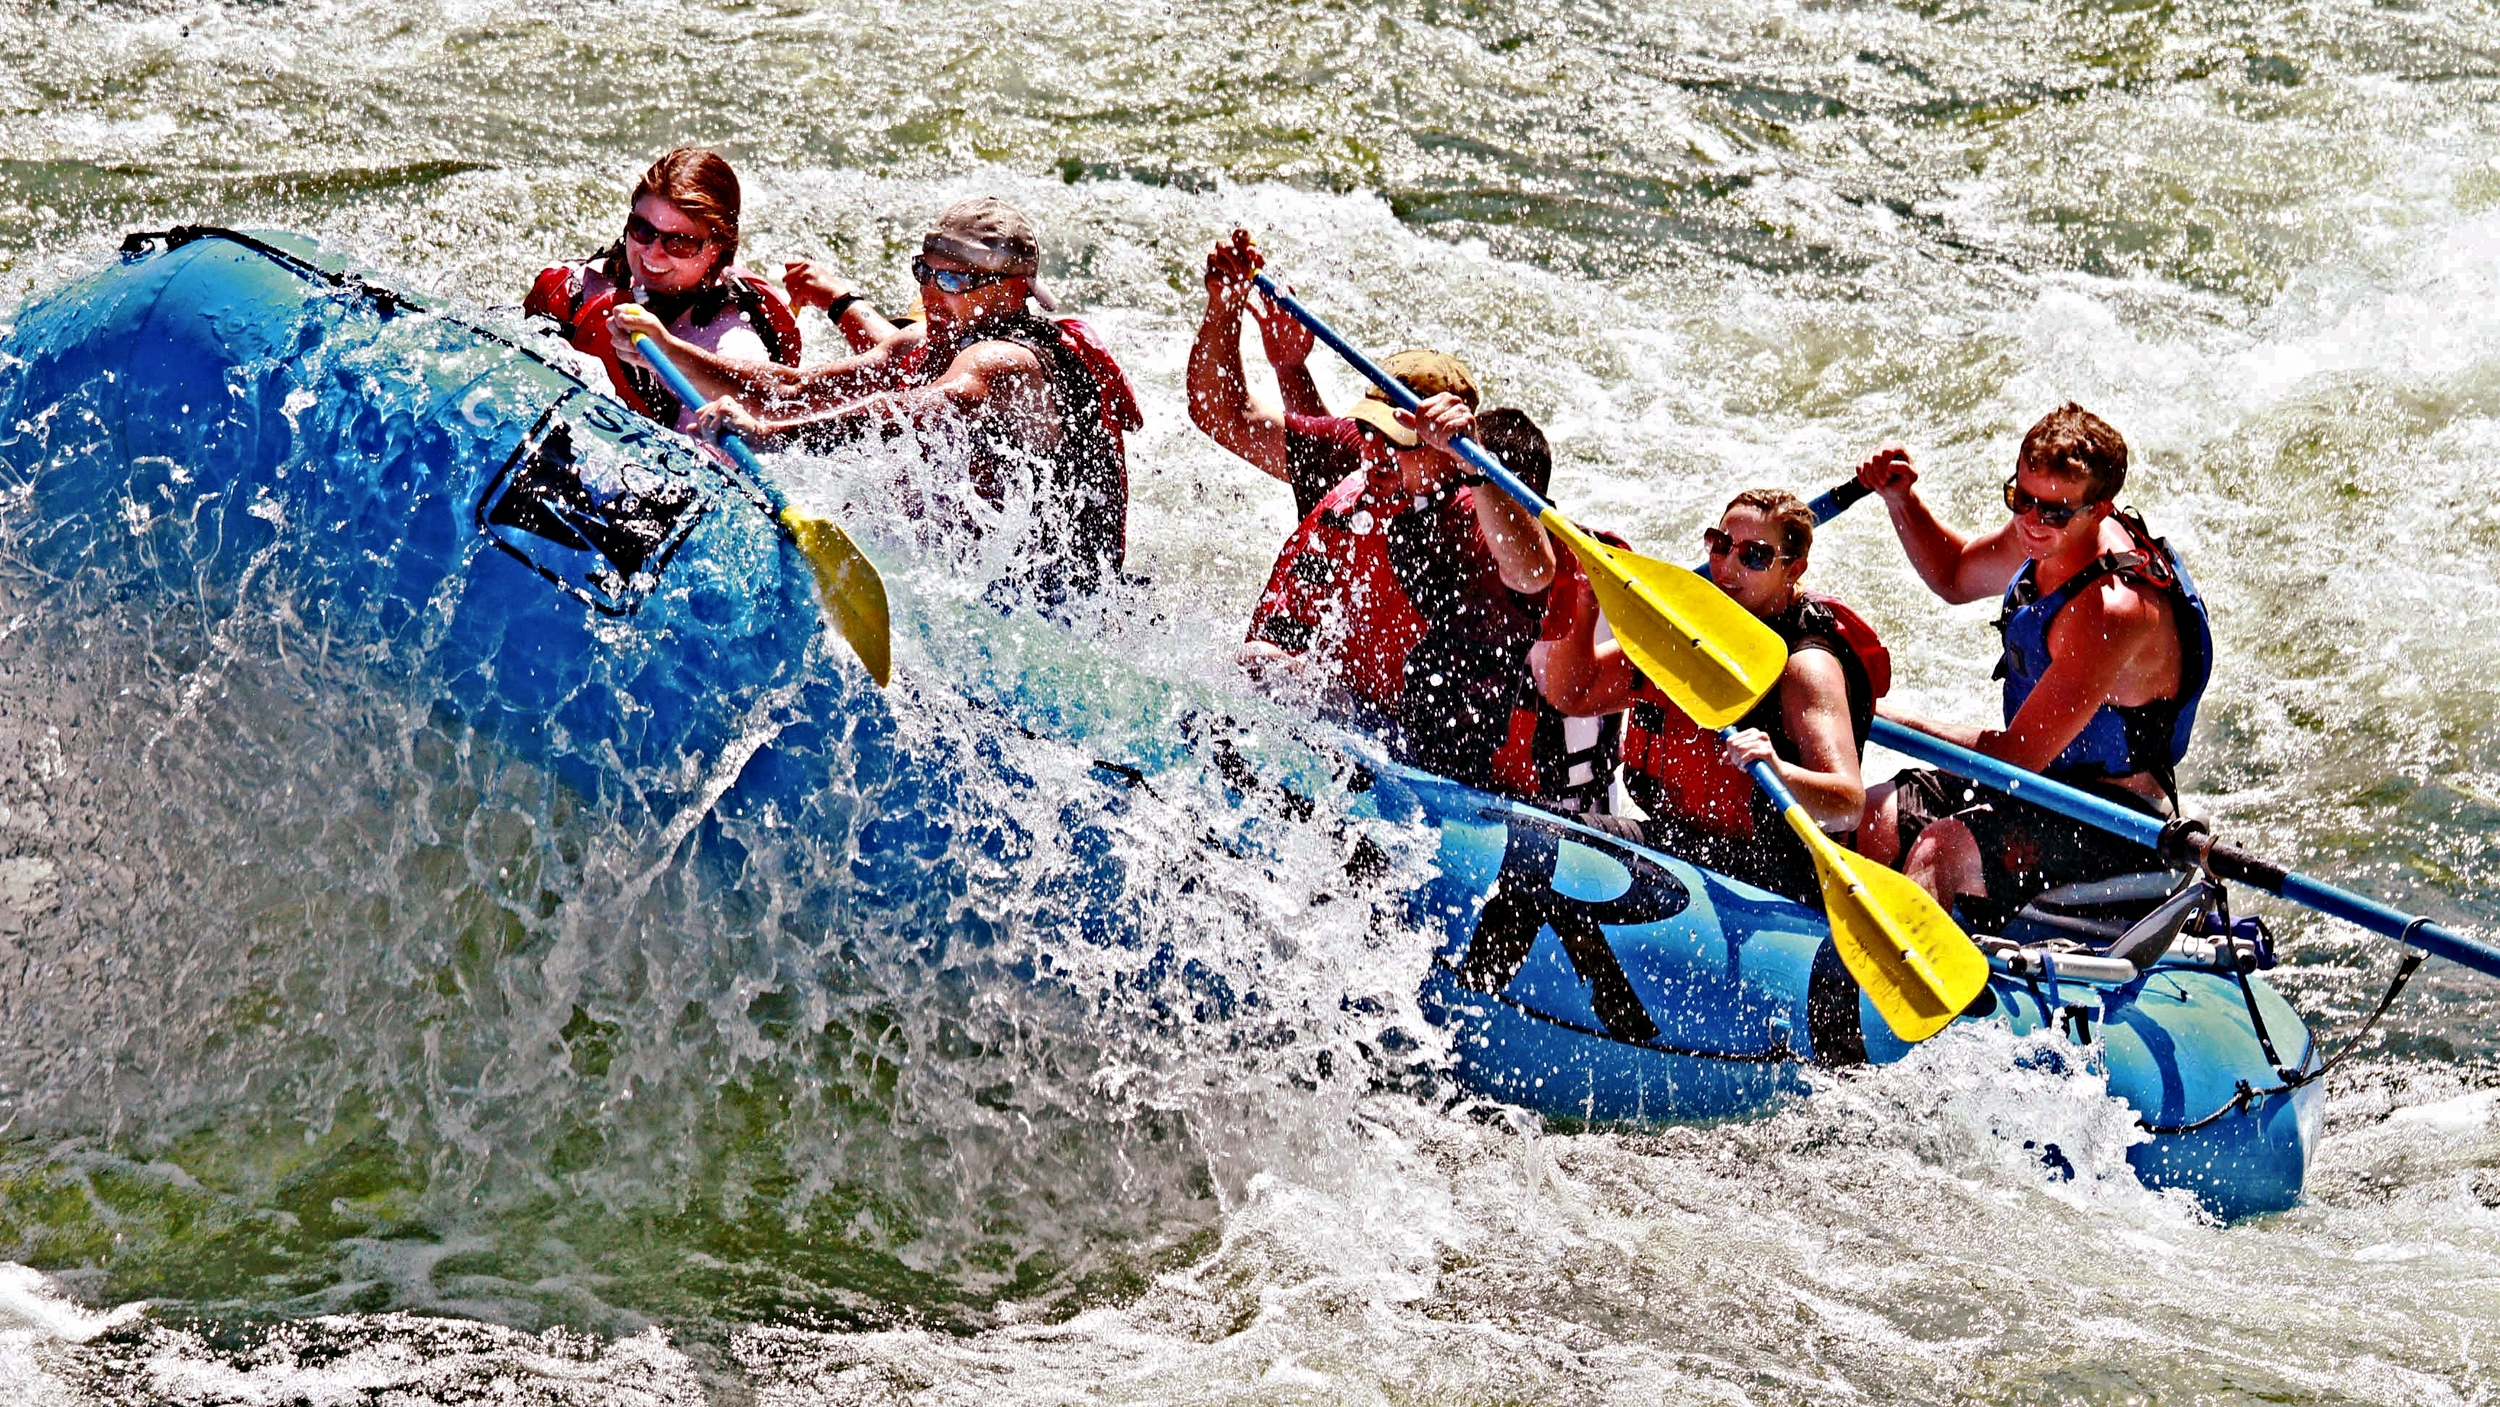 Group getting a big ride in the waves of Timezone rapid on the Salmon River near McCall Idaho.